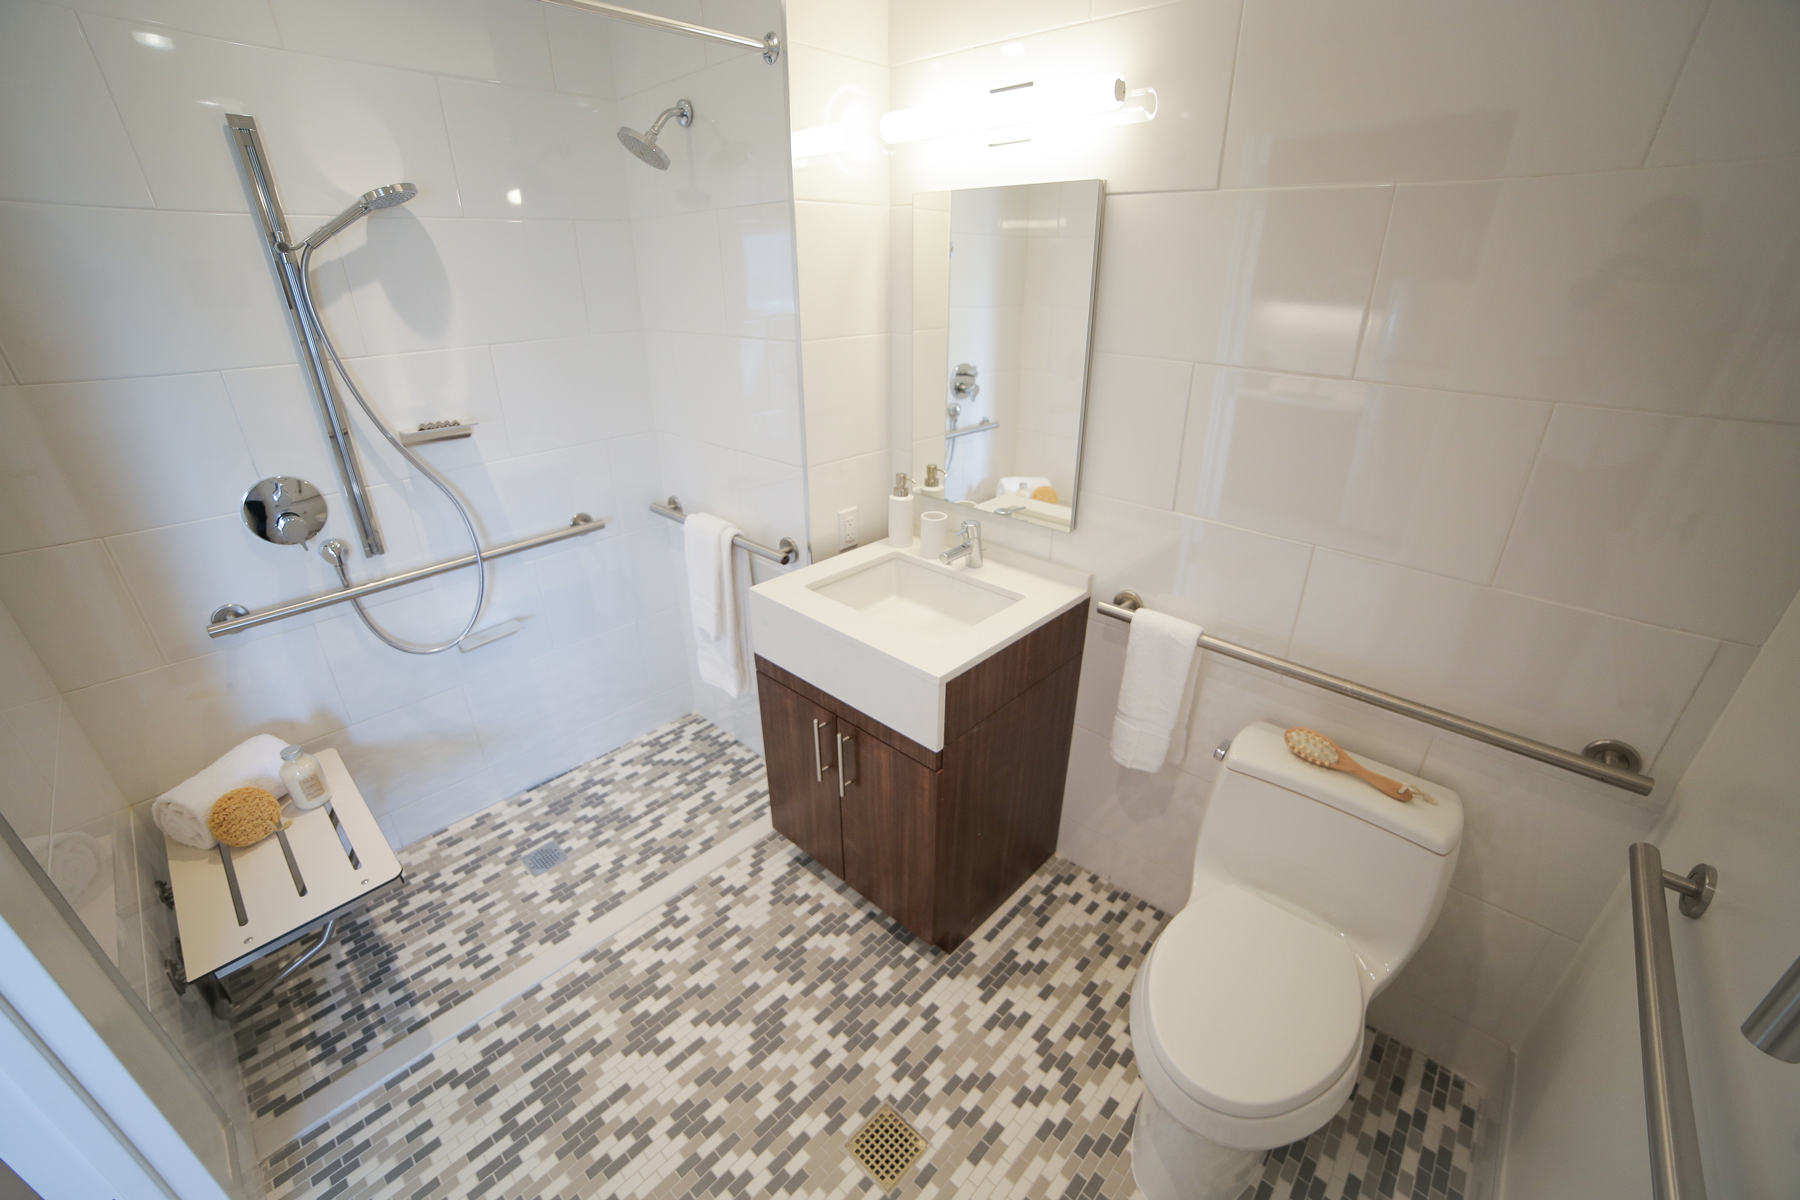 A bathroom featuring a handicap accessible walk-in shower, modern bathroom fixtures, and convenient handrails.